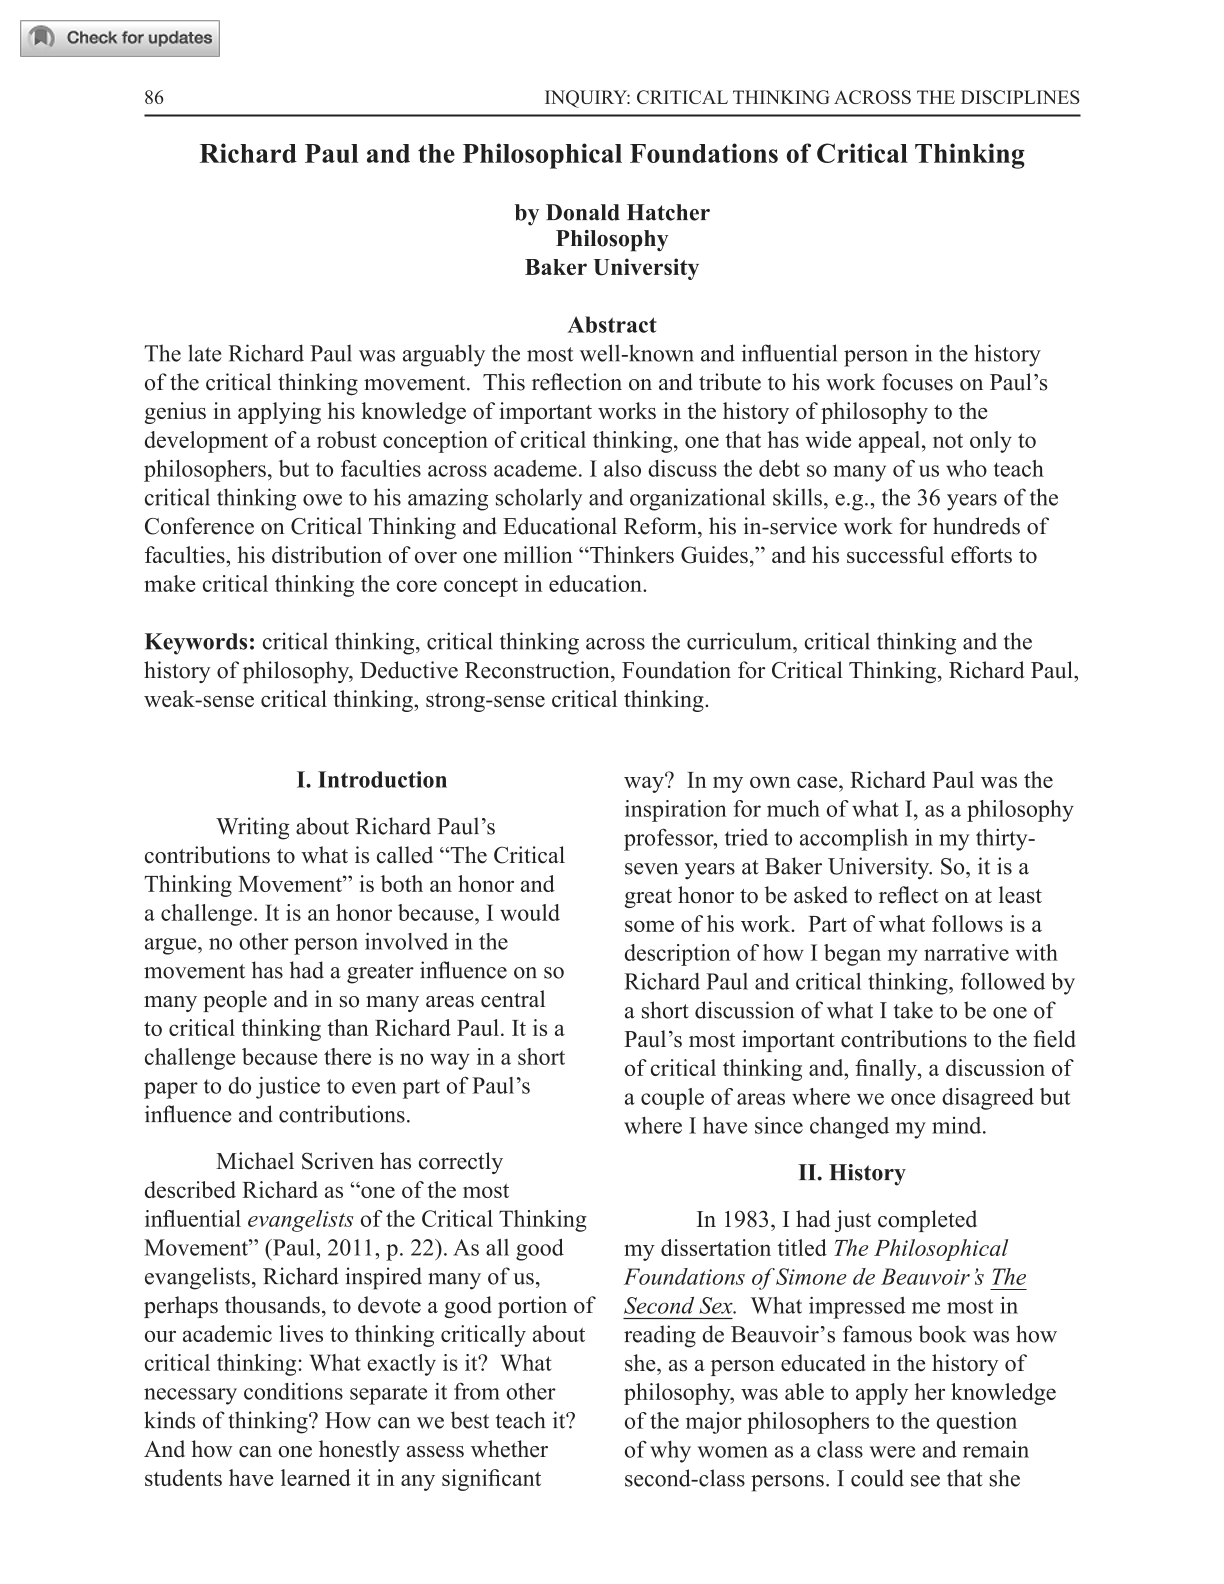 Sigmund freud creative writers and daydreaming essay